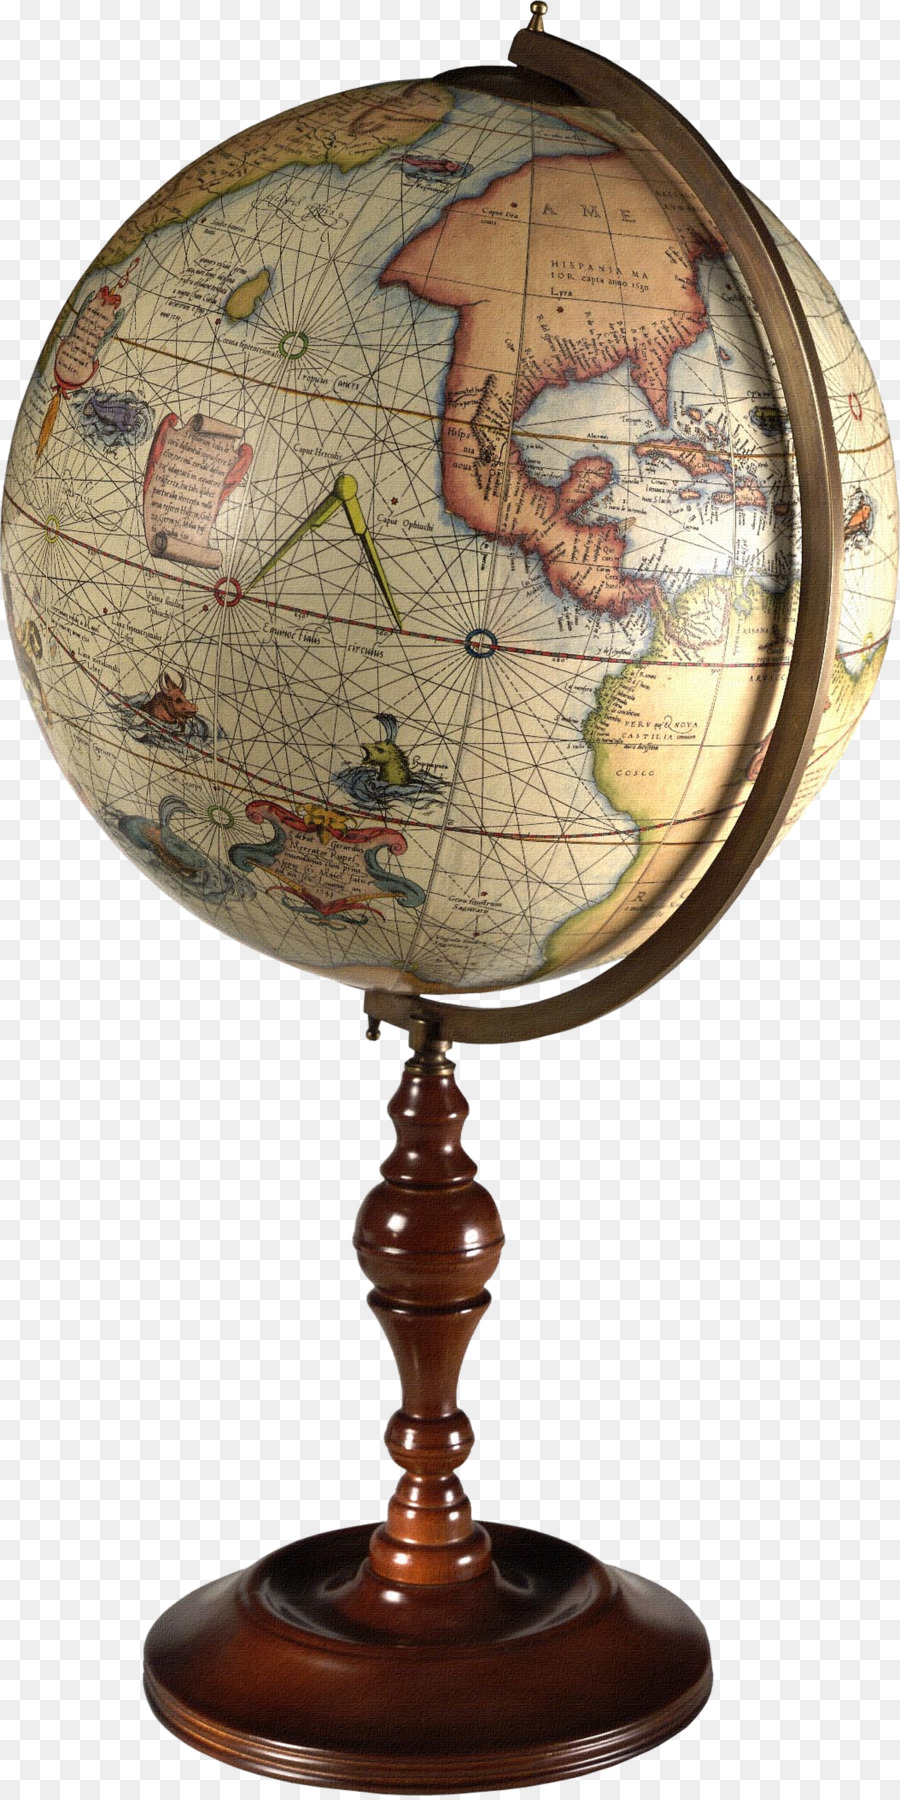 1 world globes maps old world 1 world globes maps globe png 1 world globes maps old world 1 world globes maps globe gumiabroncs Gallery